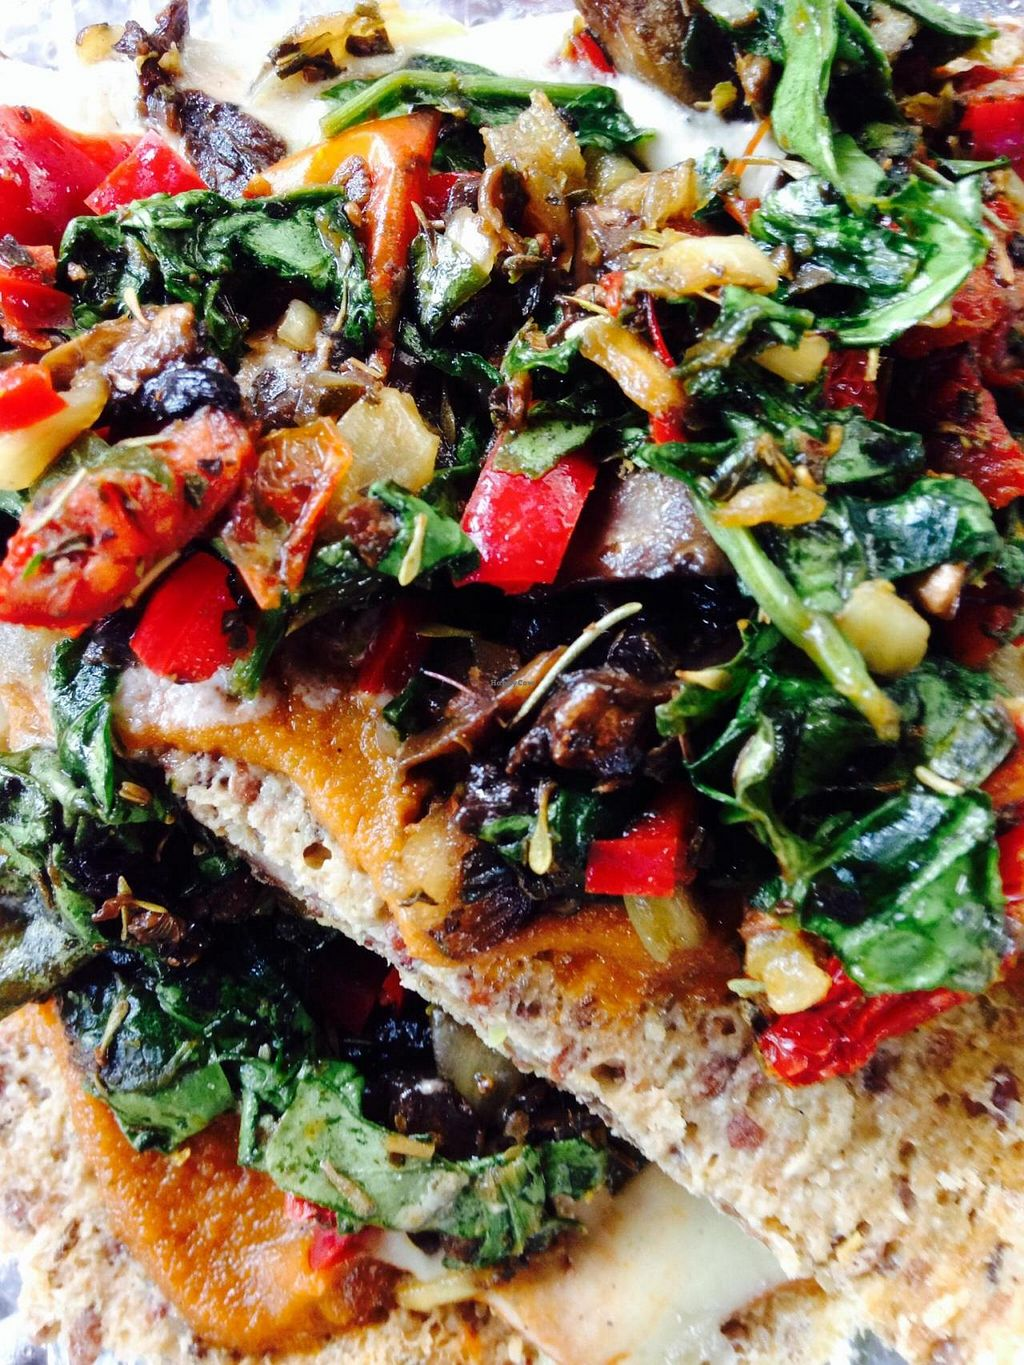 """Photo of Senbeb Cafe  by <a href=""""/members/profile/cookiem"""">cookiem</a> <br/>Raw vegan pizza! <br/> August 23, 2014  - <a href='/contact/abuse/image/13840/77959'>Report</a>"""